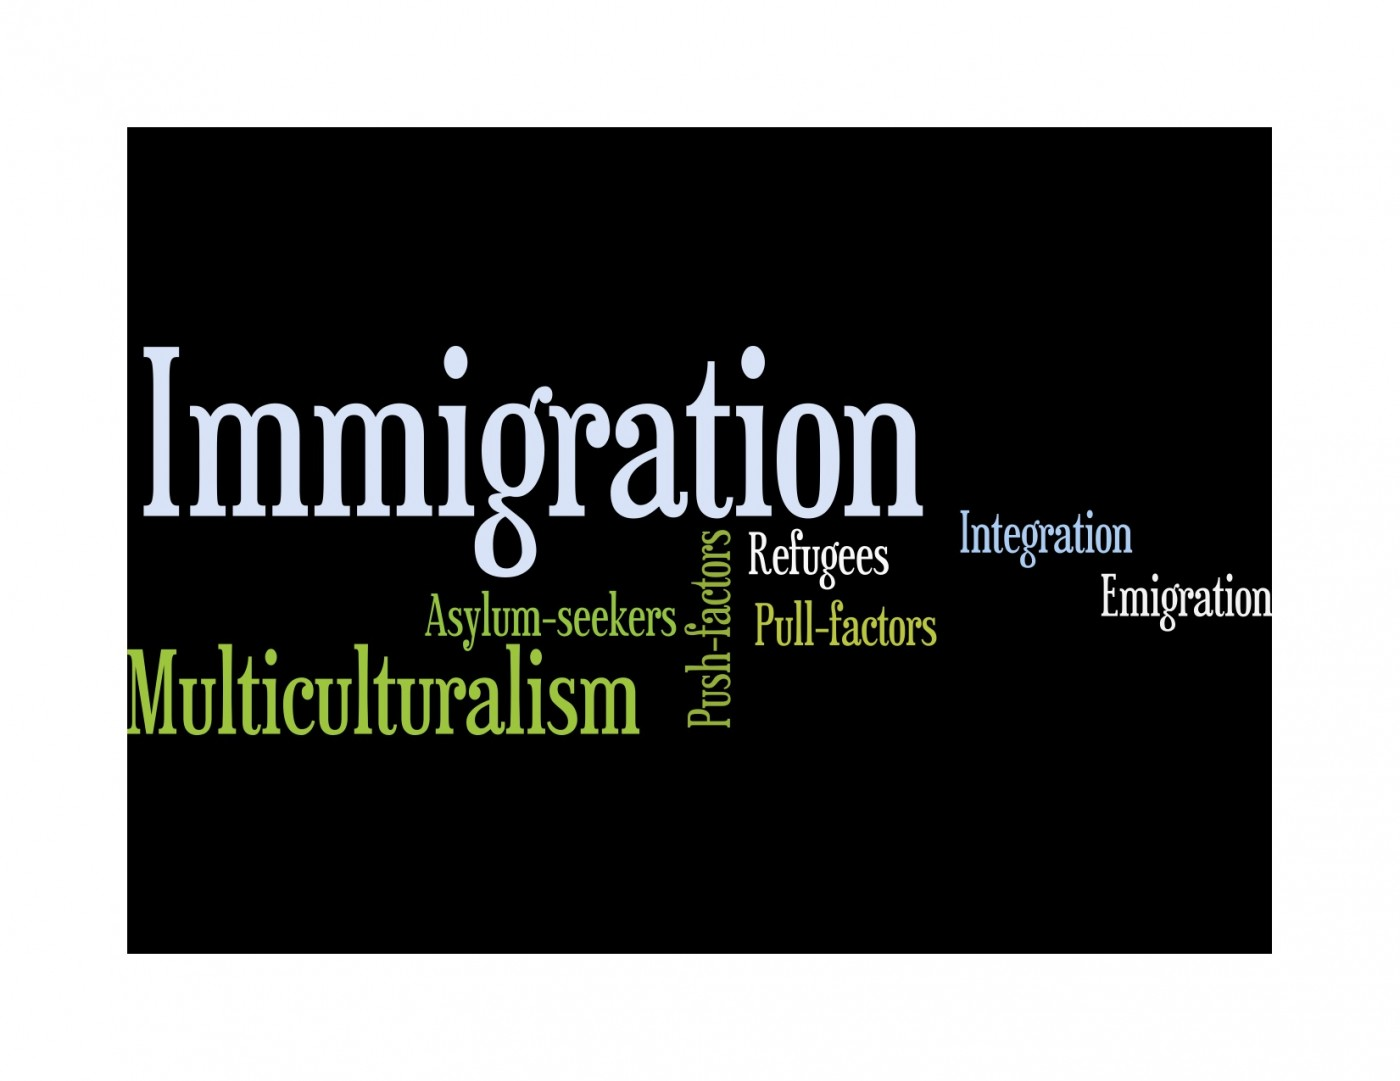 016 Immigration Essay Example Exceptional Examples Pro Argumentative Outline 1400